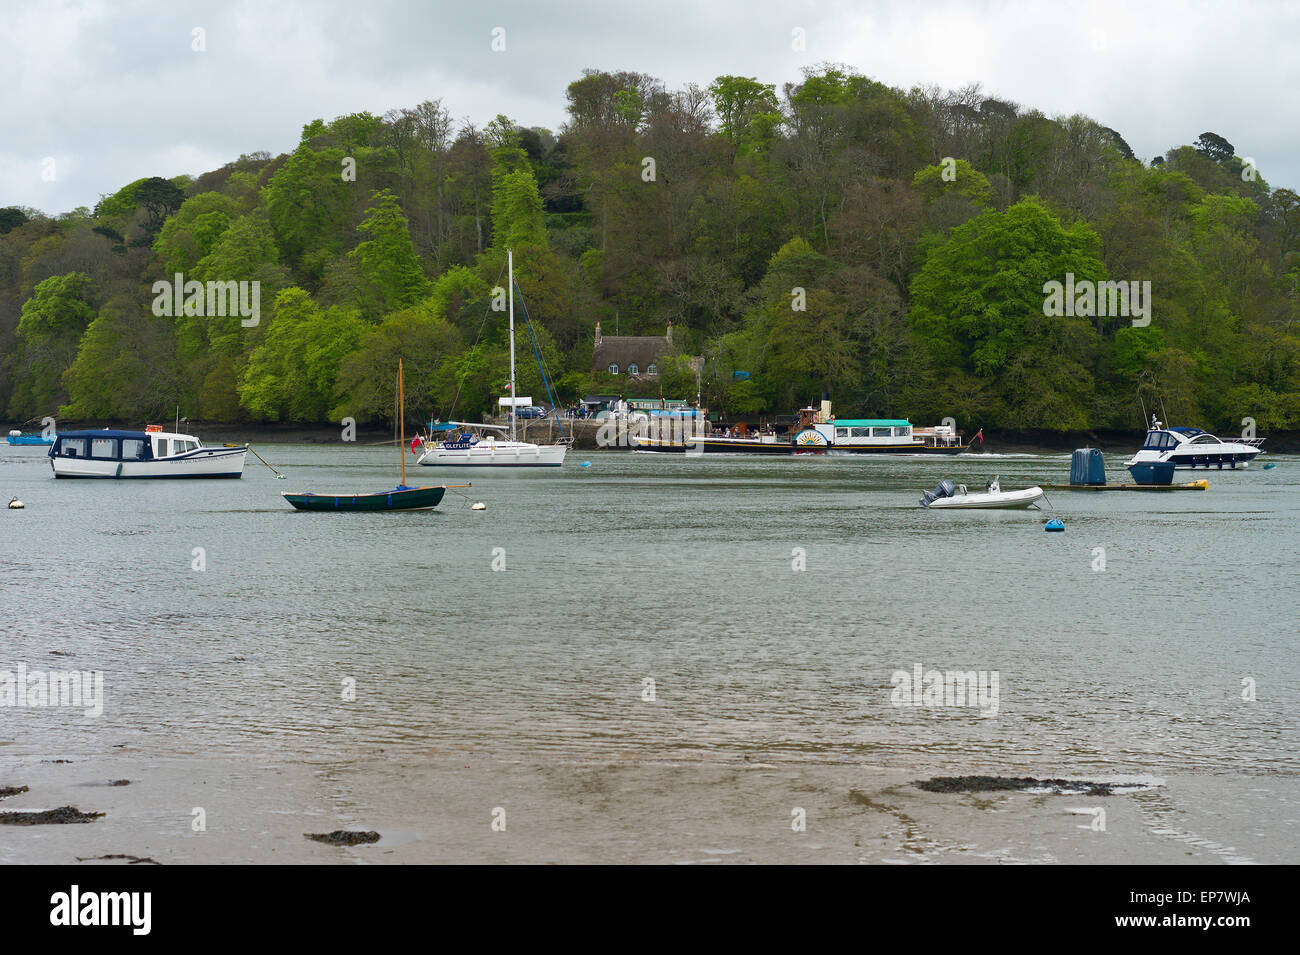 The Greenway ferry crossing point on the River Dart estuary at Dittisham, Devon, UK Stock Photo